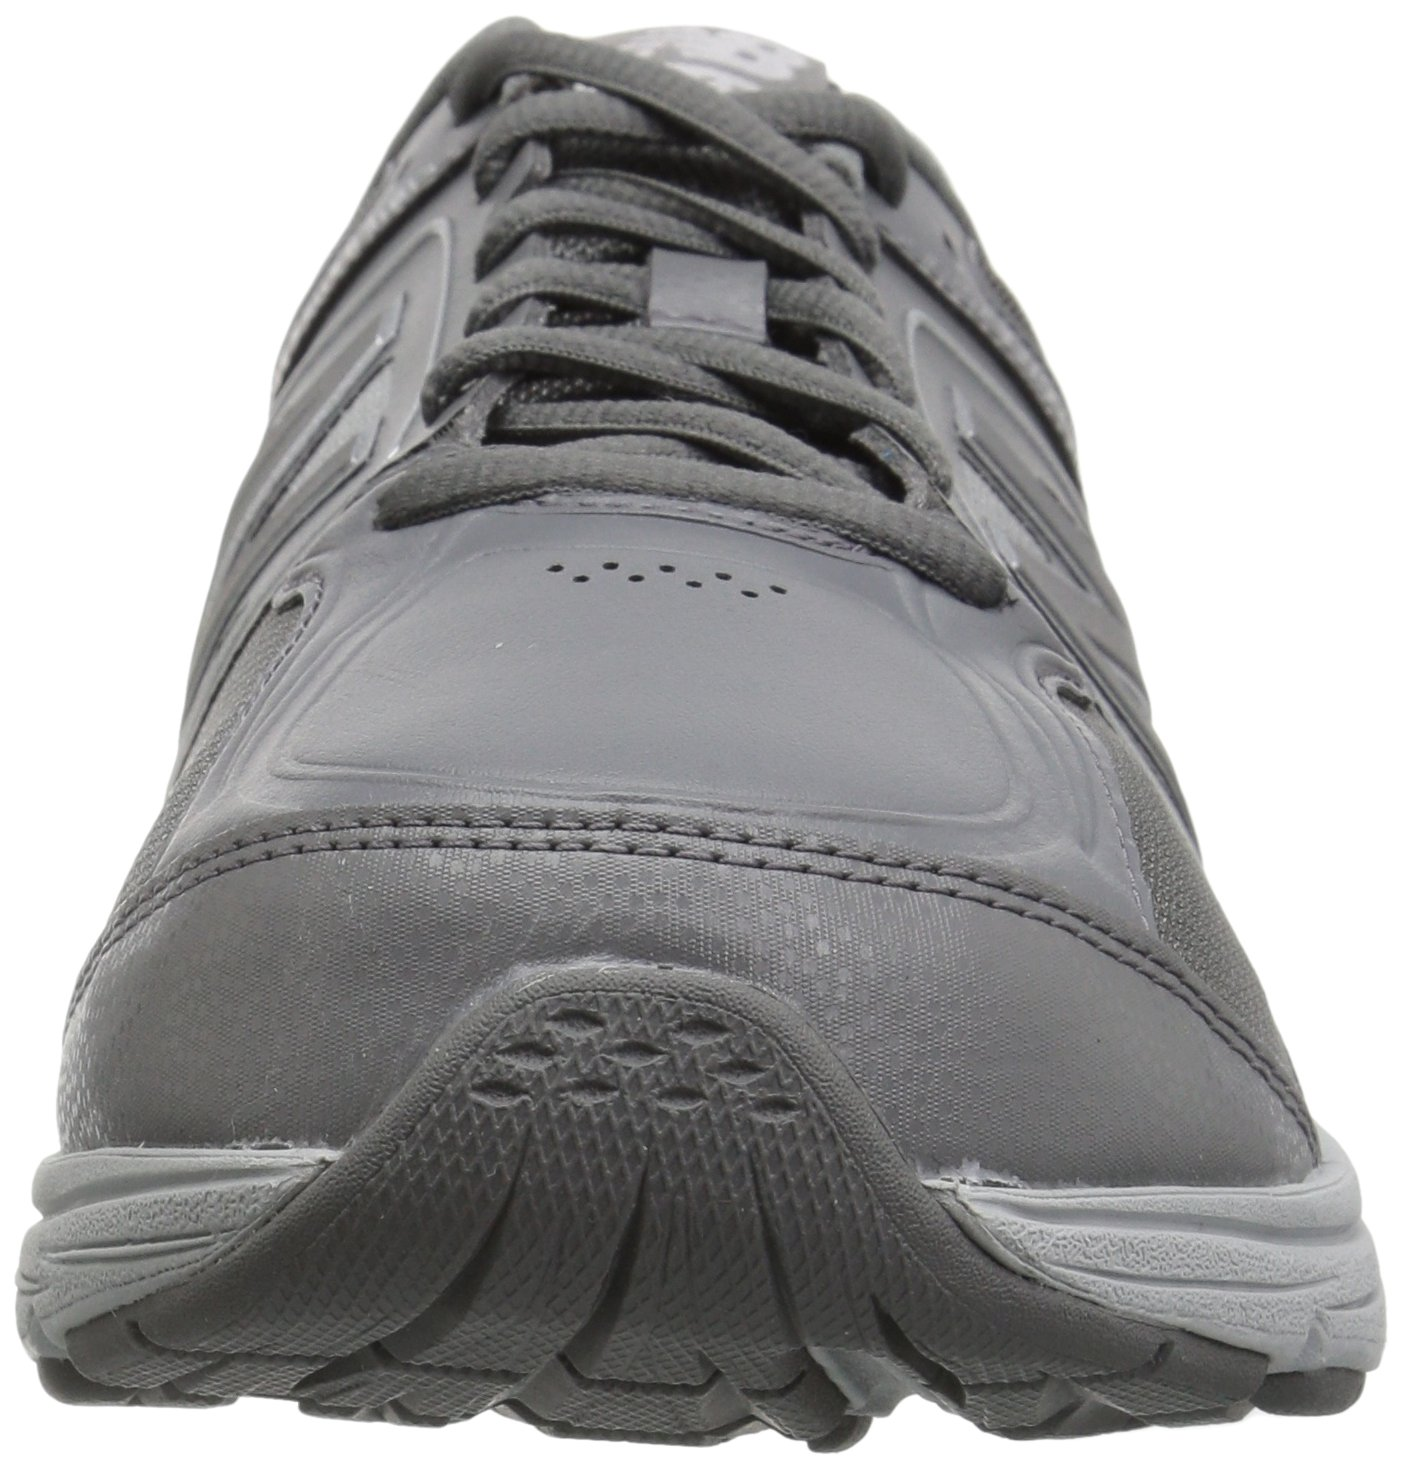 New Balance Women's 847v3 Walking Shoe B06XSCCM2C 11 4E US|Grey